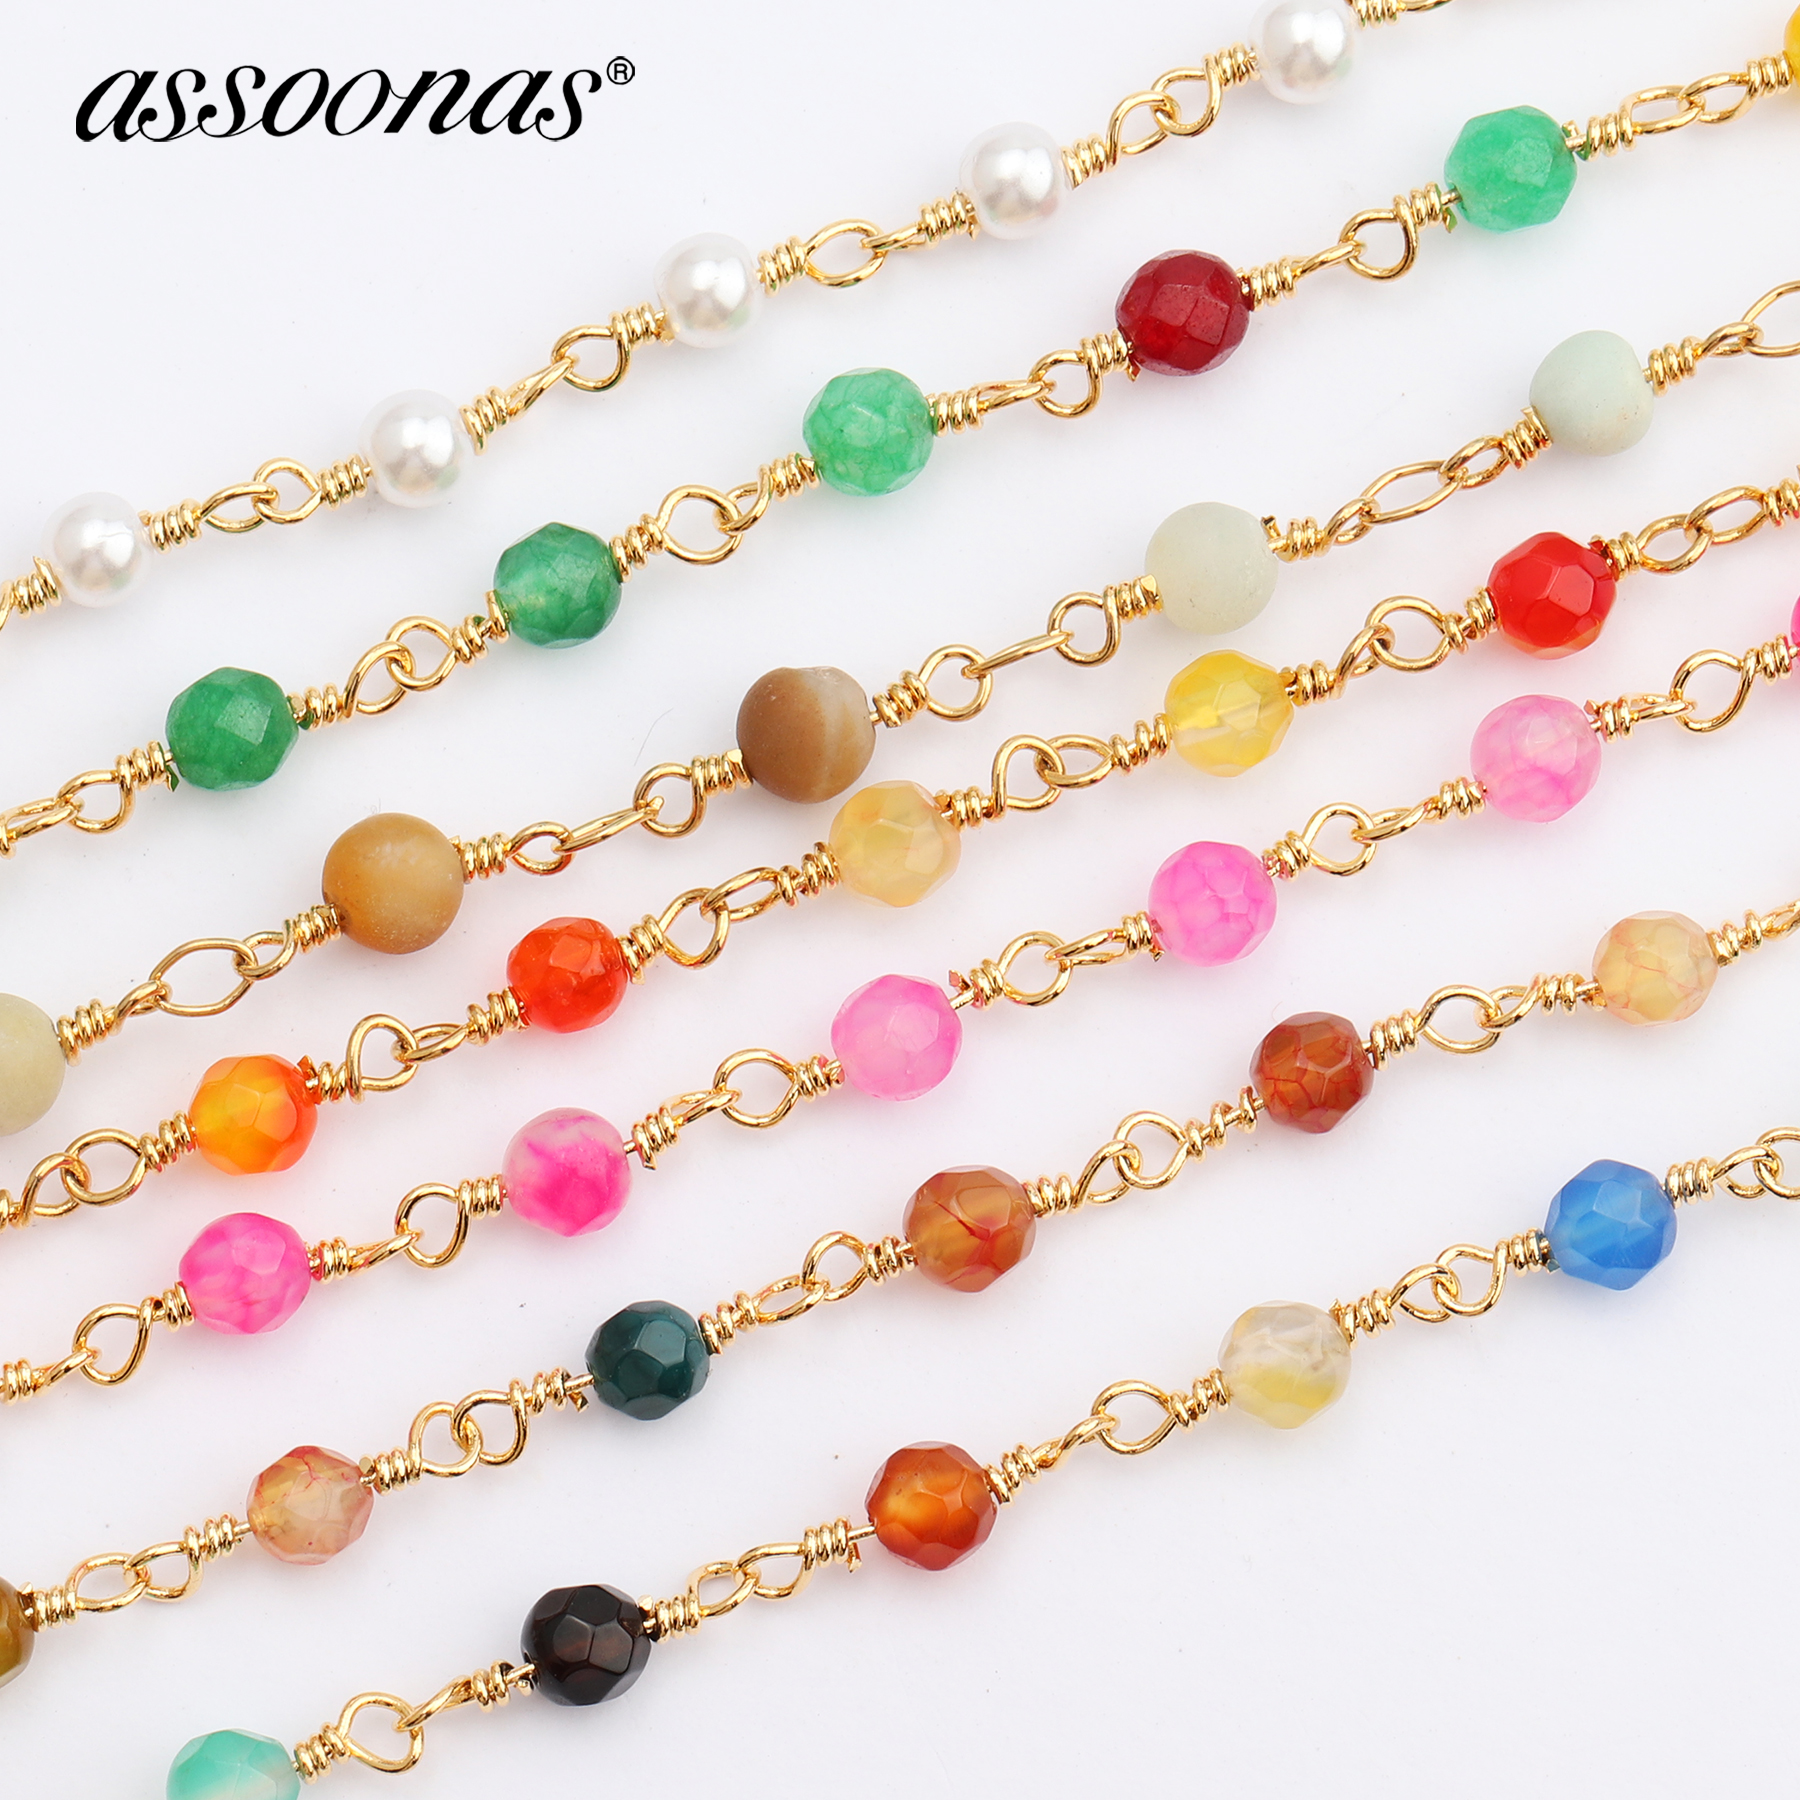 Assoonas C47,chain,jewelry Accessories,beads Chain,accessories Parts,jewelry Findings,hand Made,diy Jewelry,diy Earrings,1m/lot